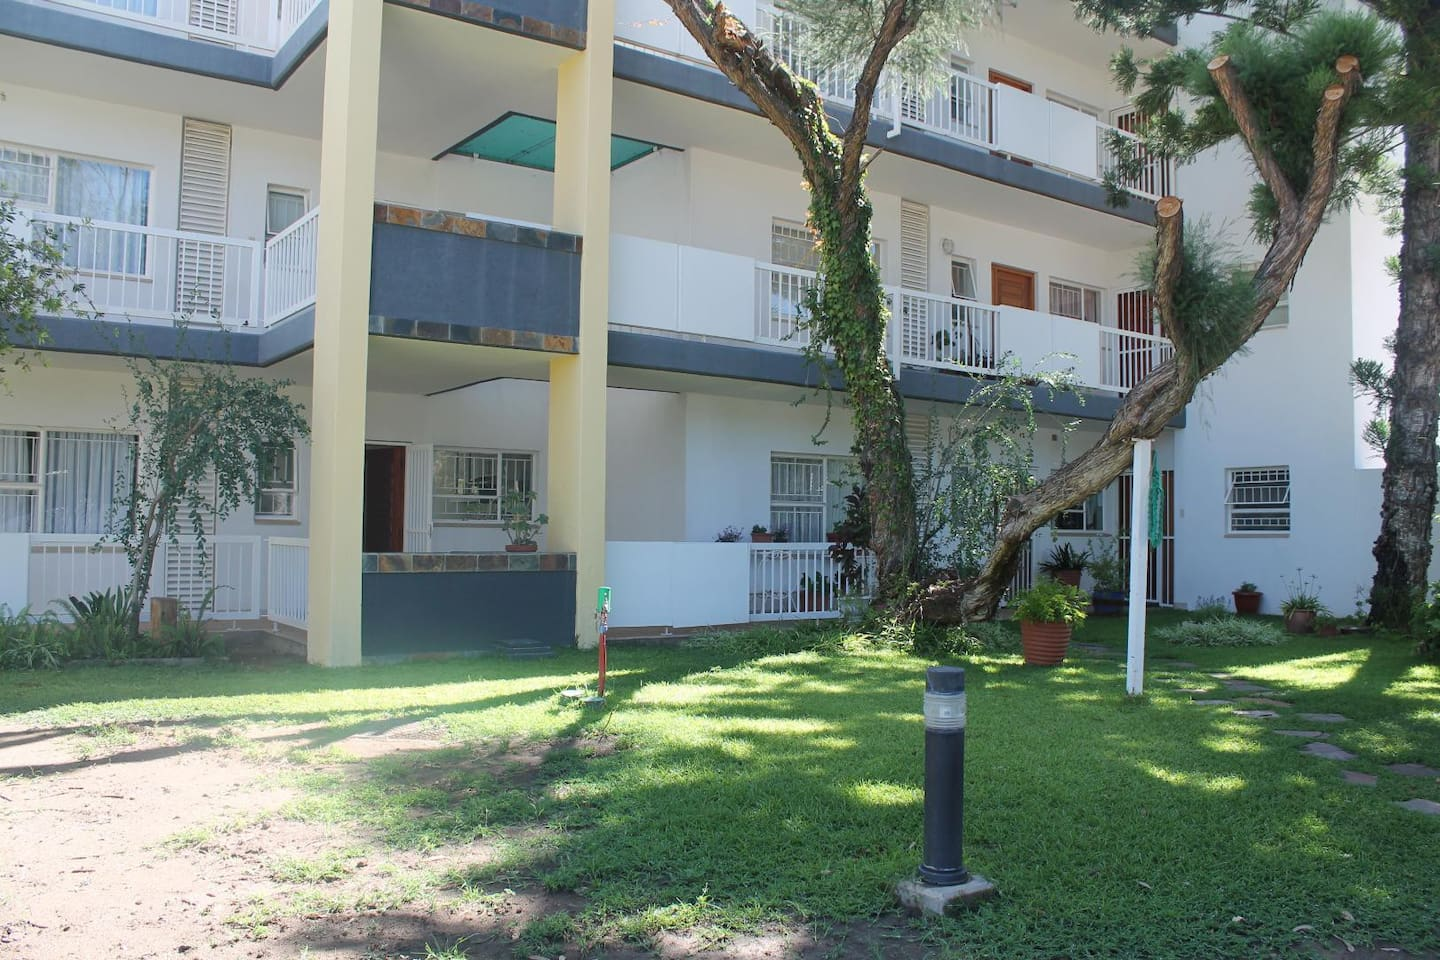 Fully furnished, ultra neat and convenient 1 bedroom flat available in tranquil, safe setting in secure building.